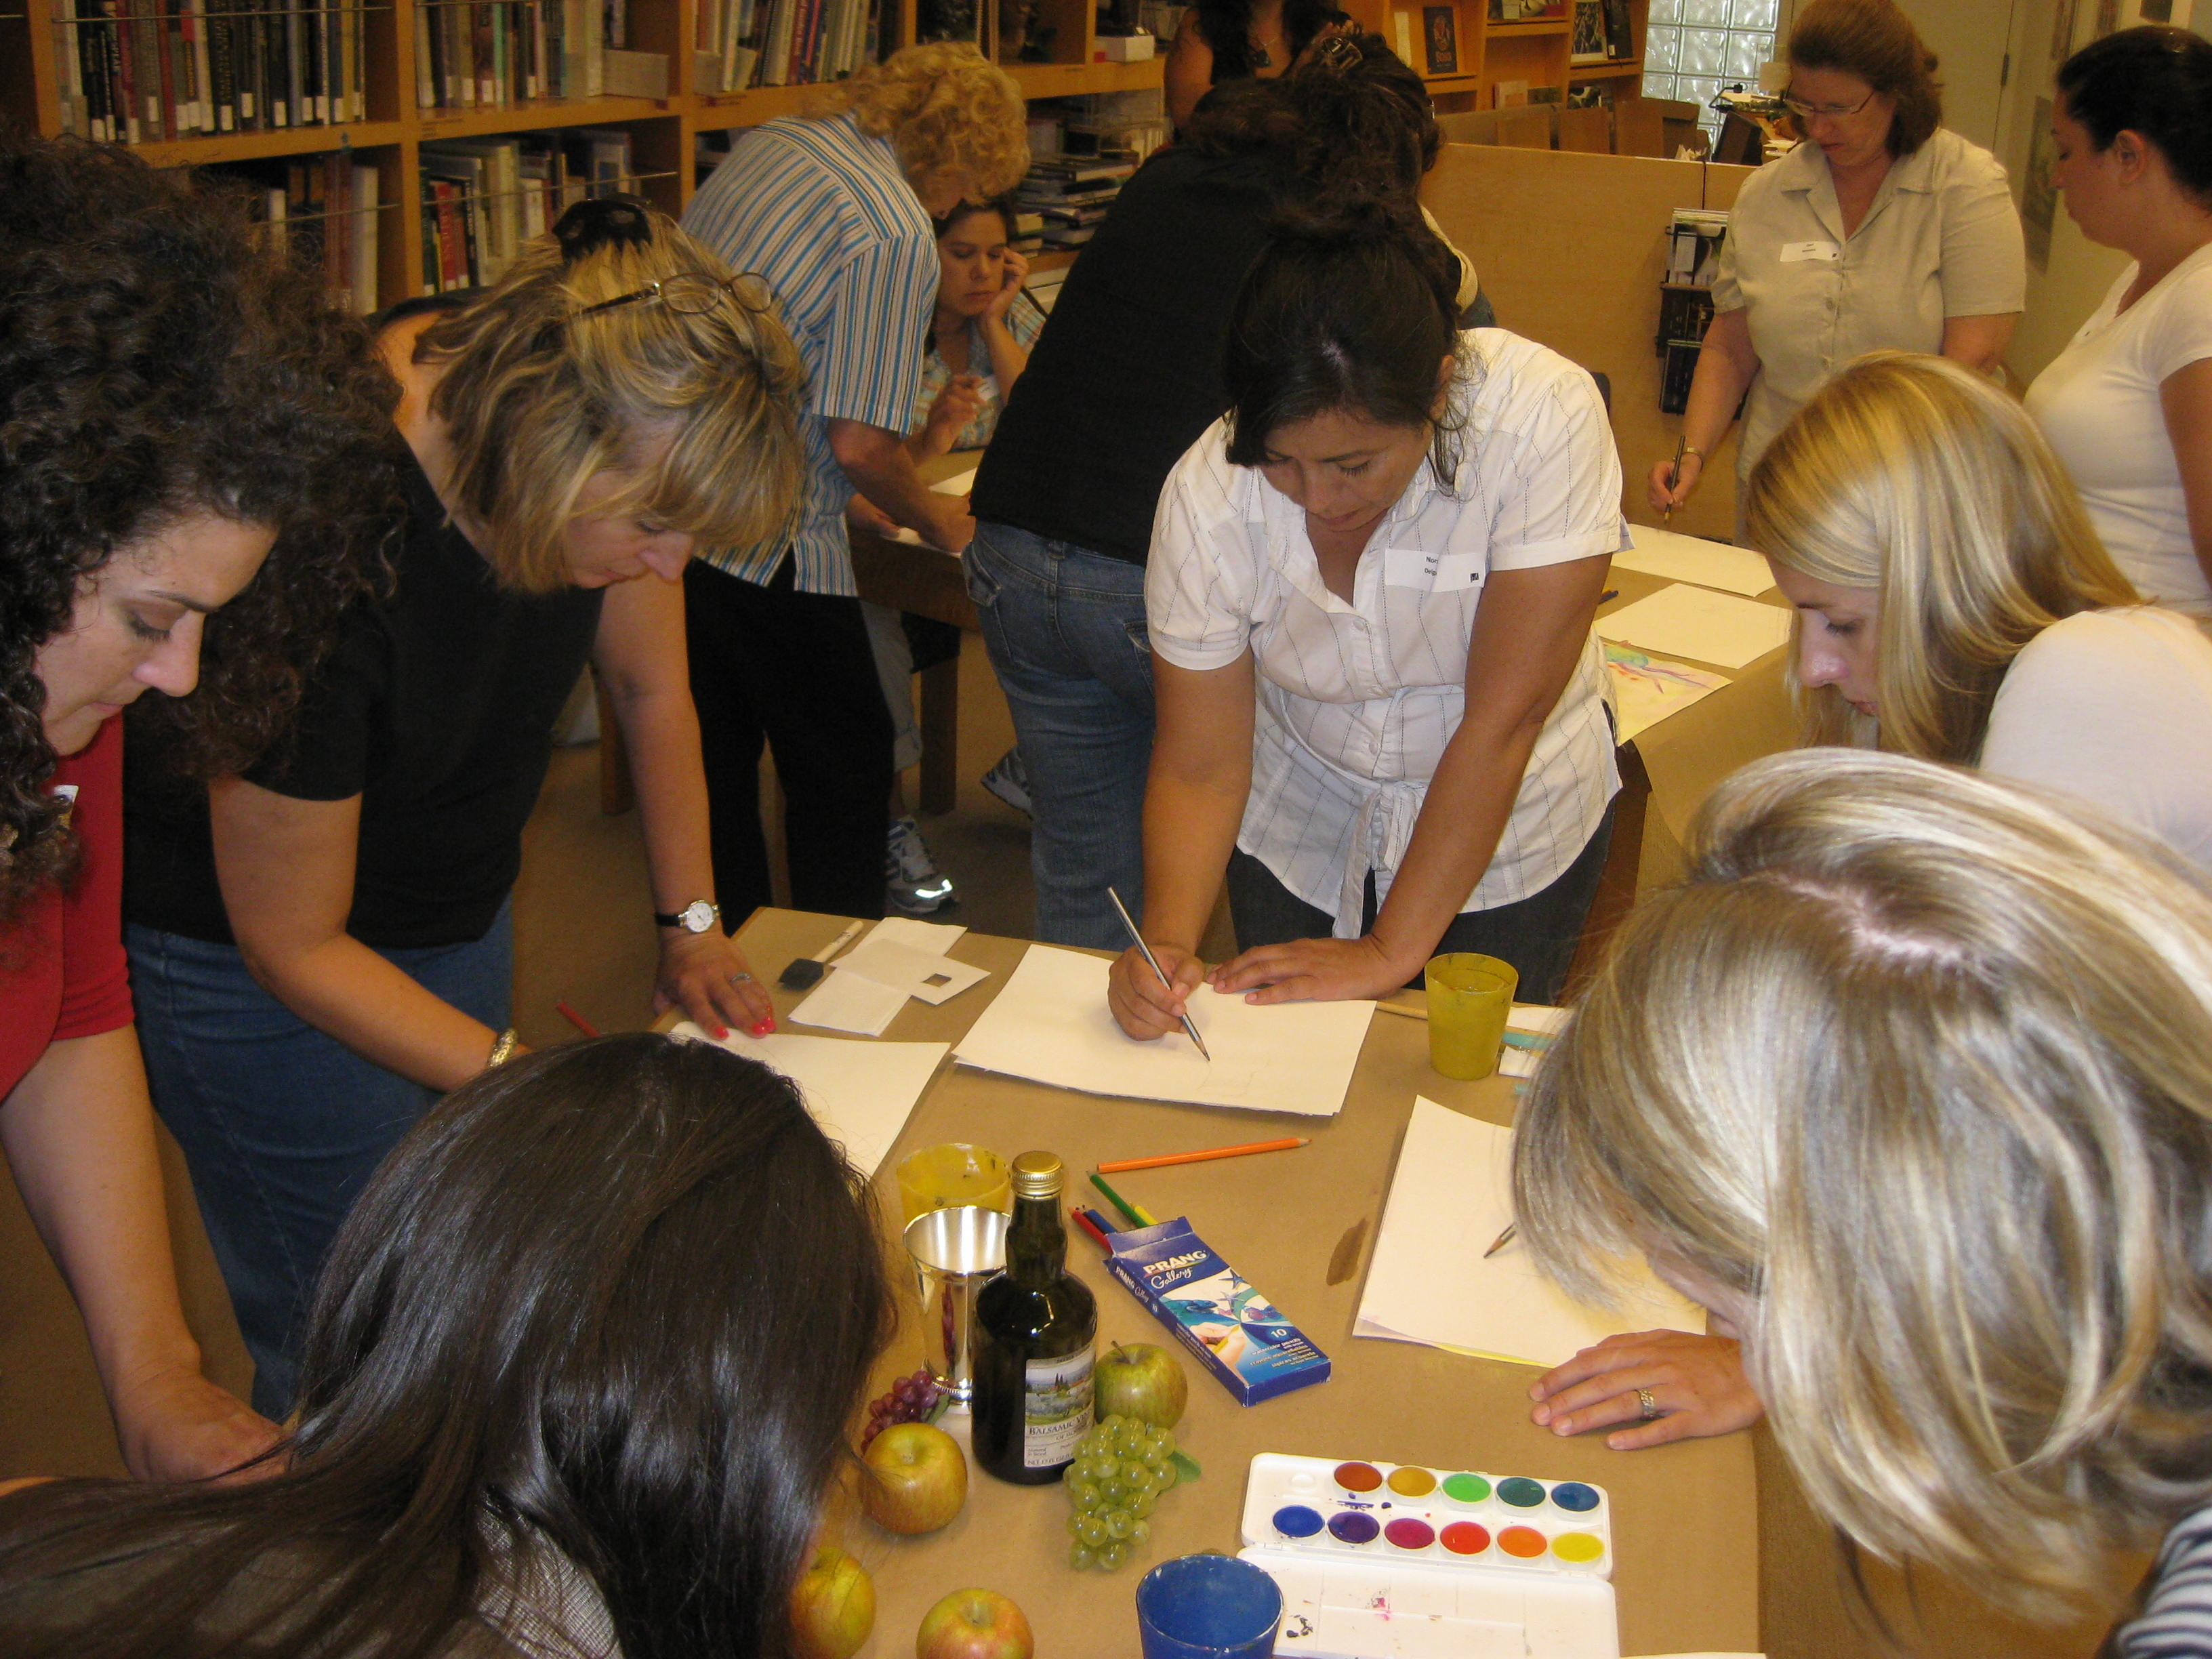 Teachers were so focused on their sketches that you could hear a pin drop in the room.